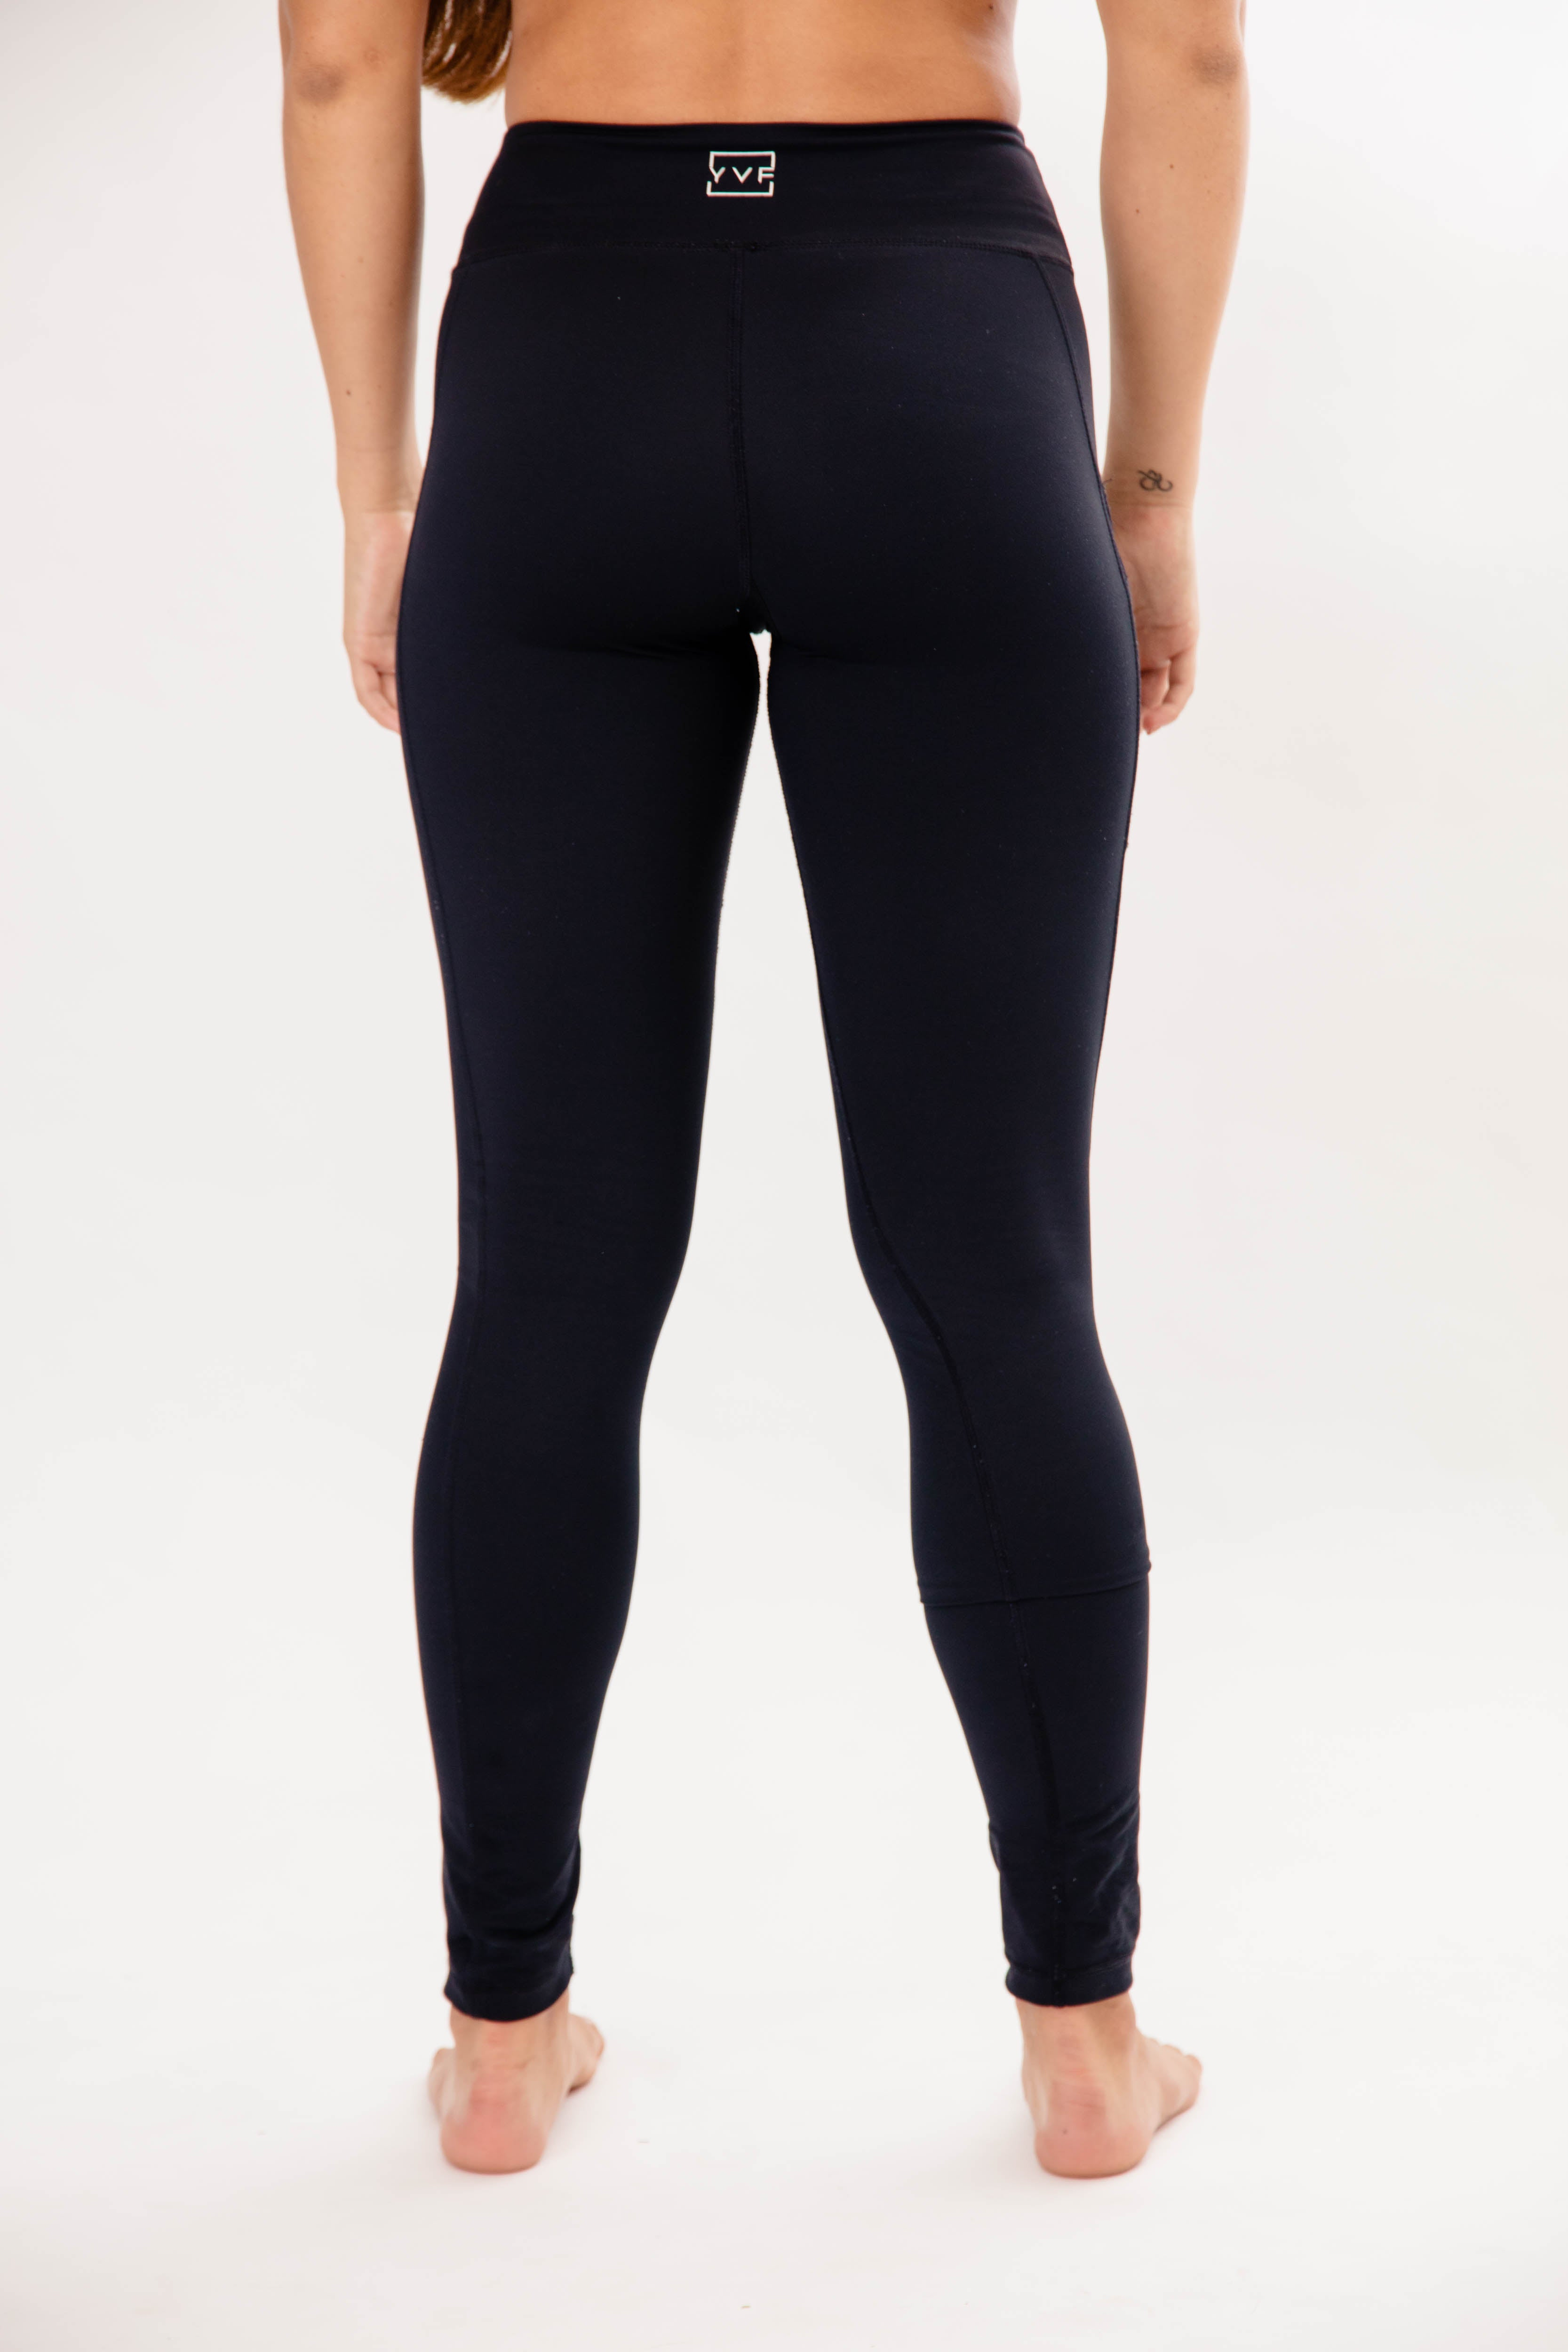 rear view of girl wearing black leggings with pocket